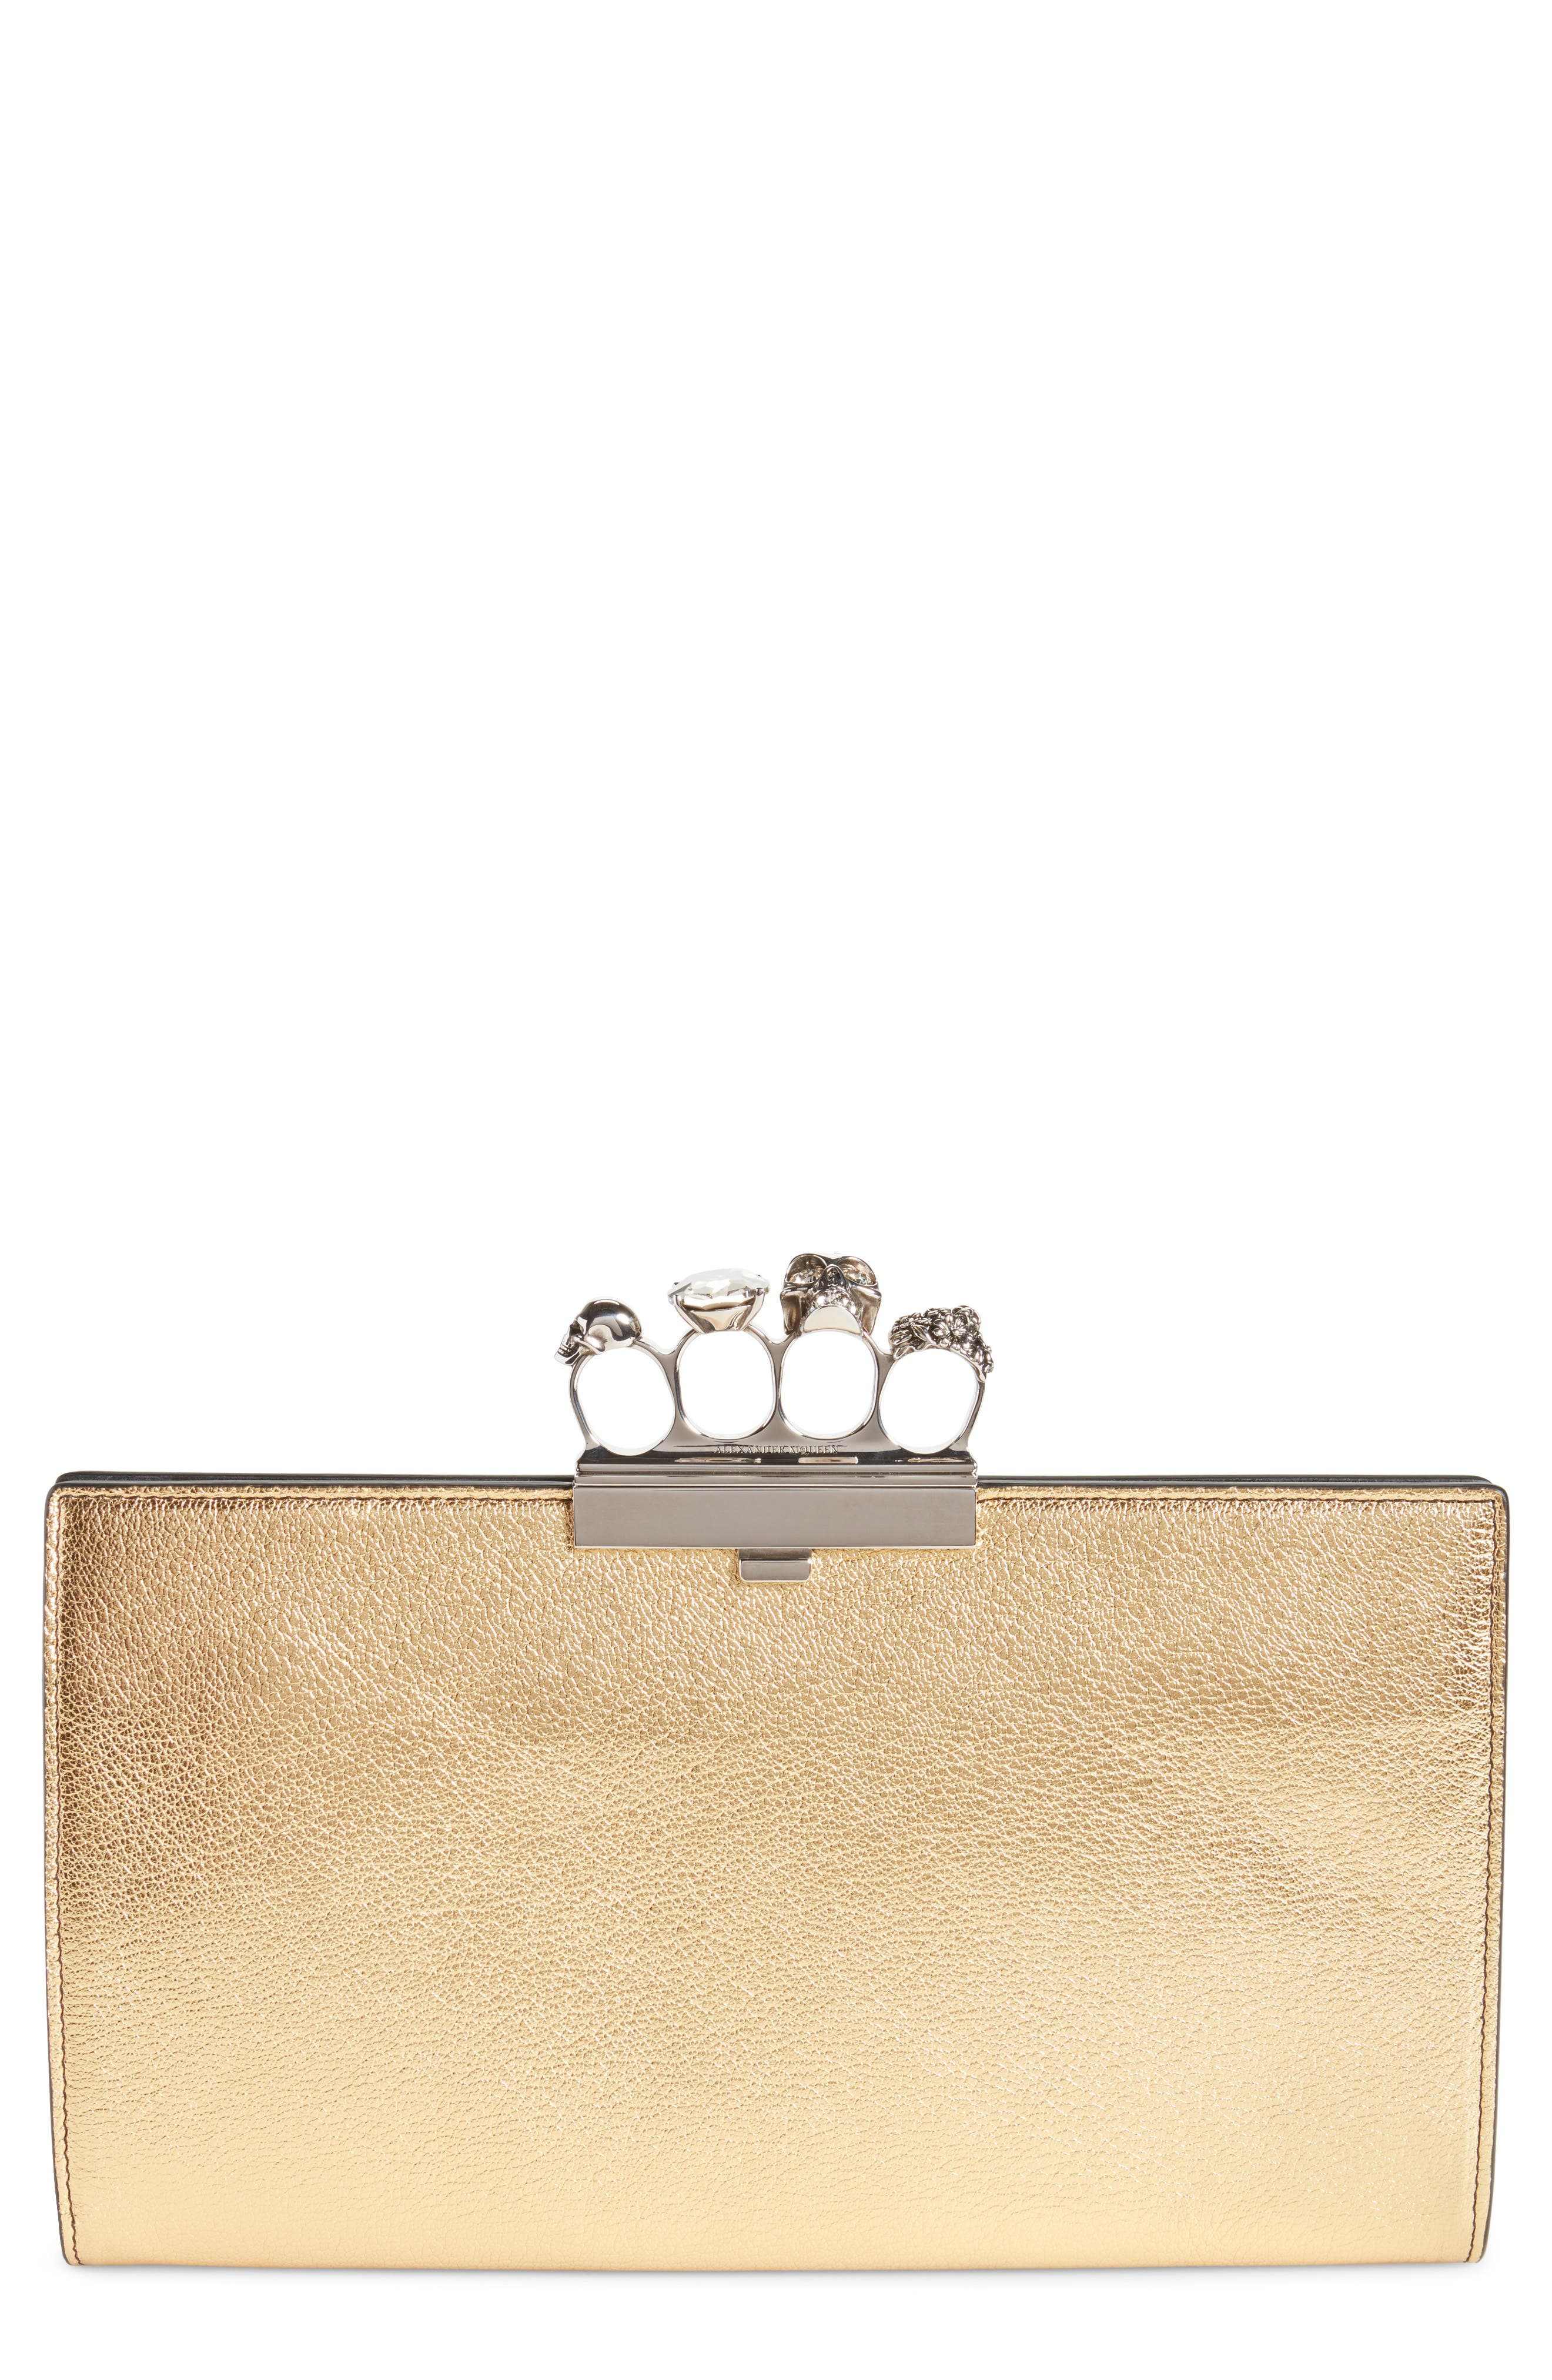 Knuckle Clasp Metallic Leather Clutch,                             Main thumbnail 1, color,                             710